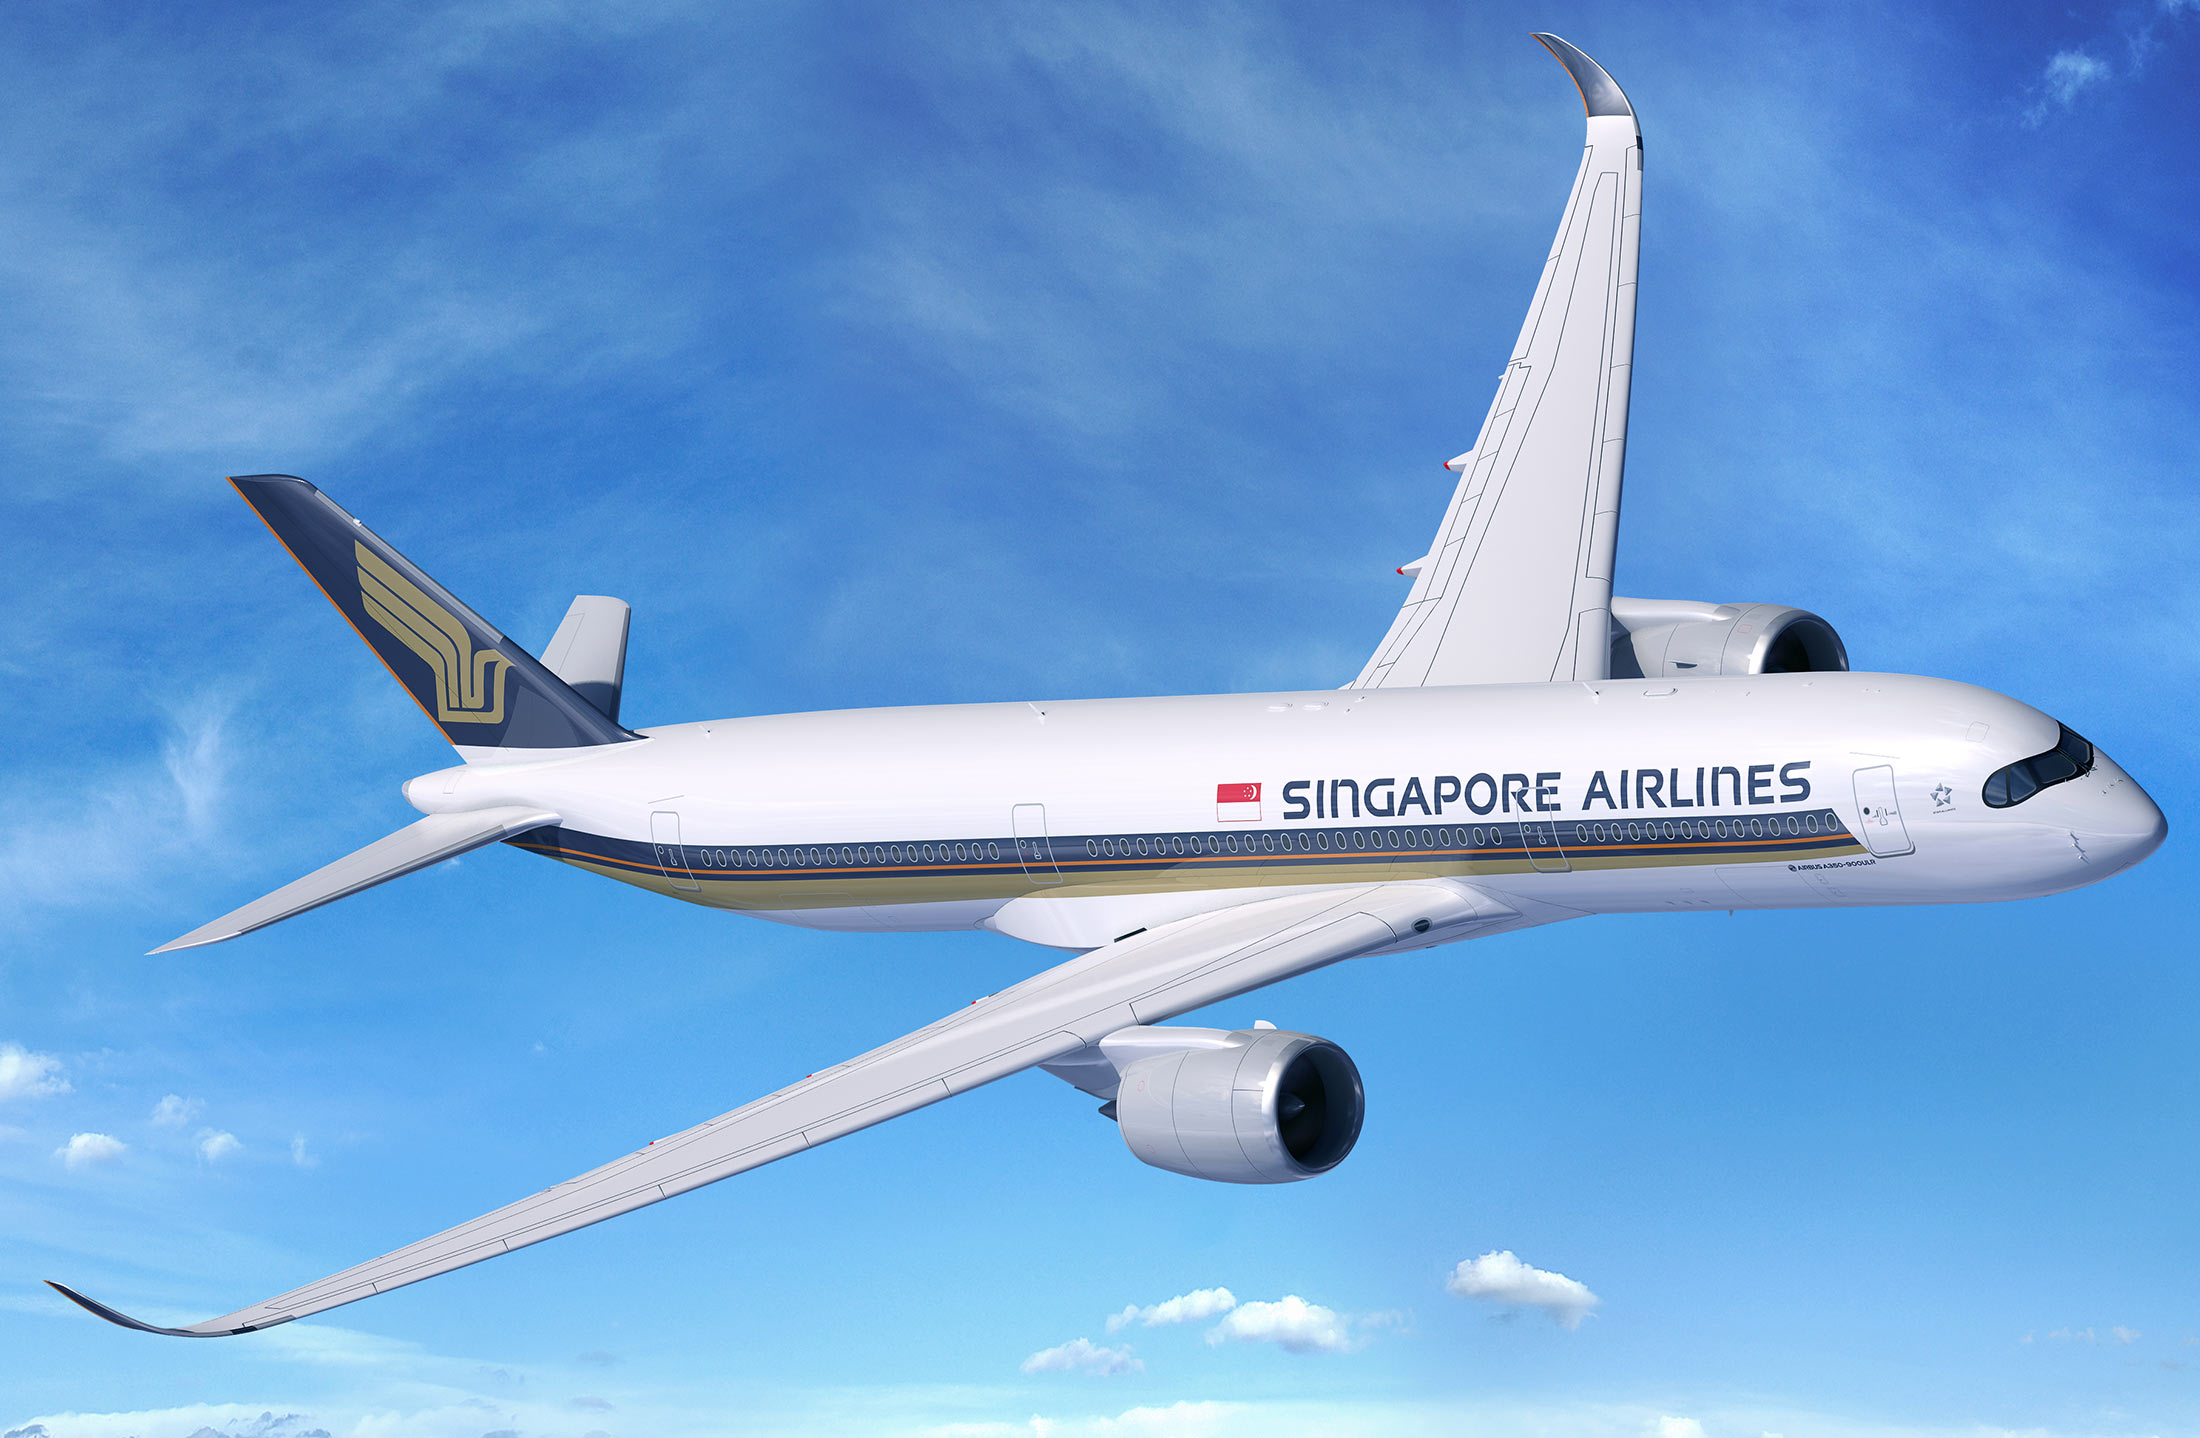 Singapore Airlines to Resume World\'s Longest Flights in 2018 - Bloomberg